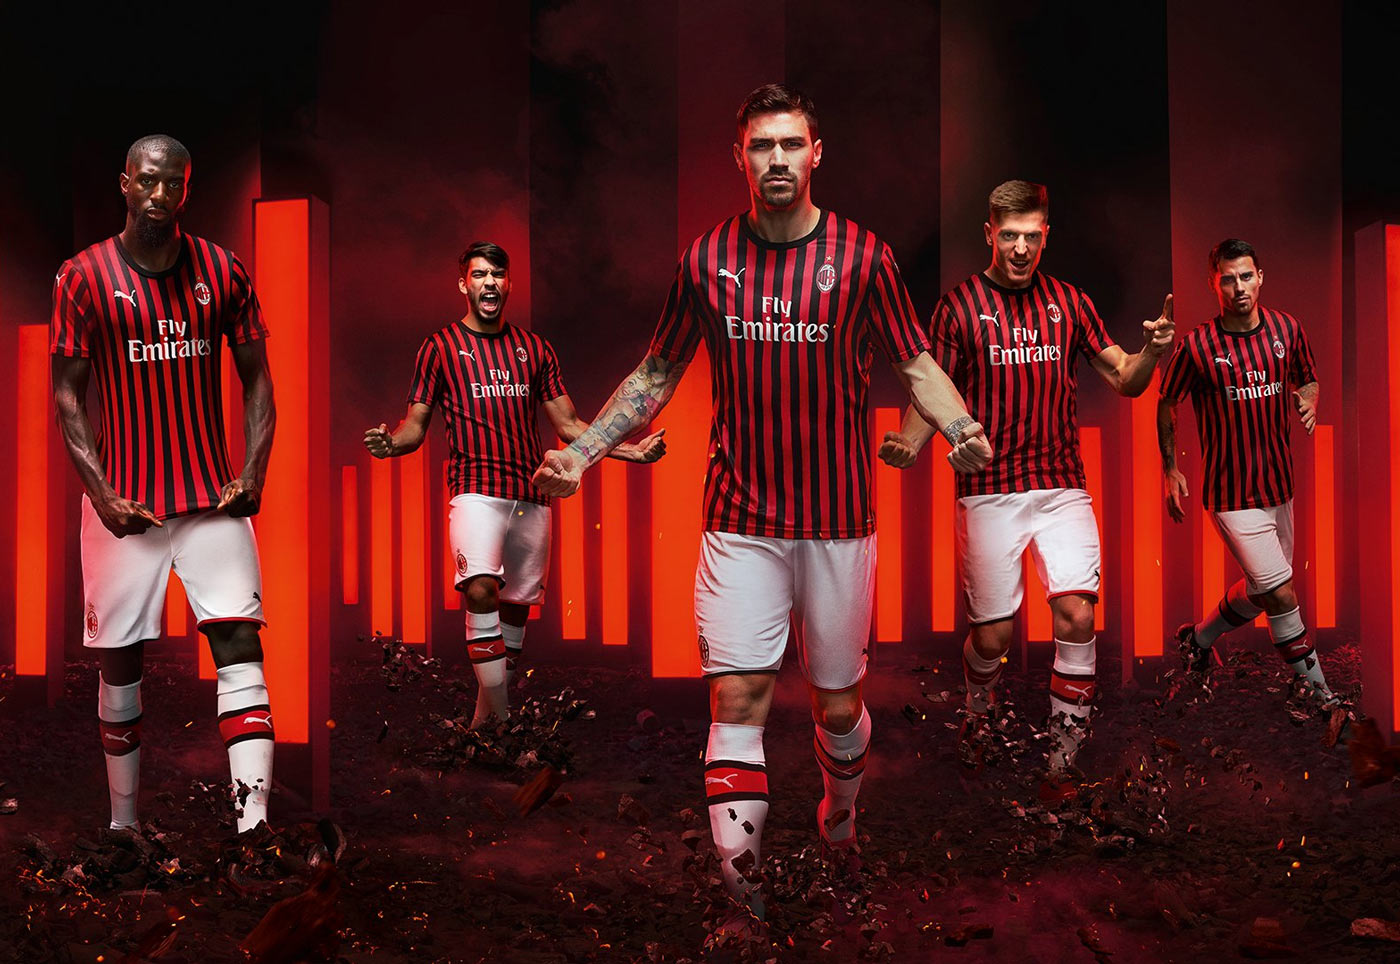 AC Milan home kit 19/20